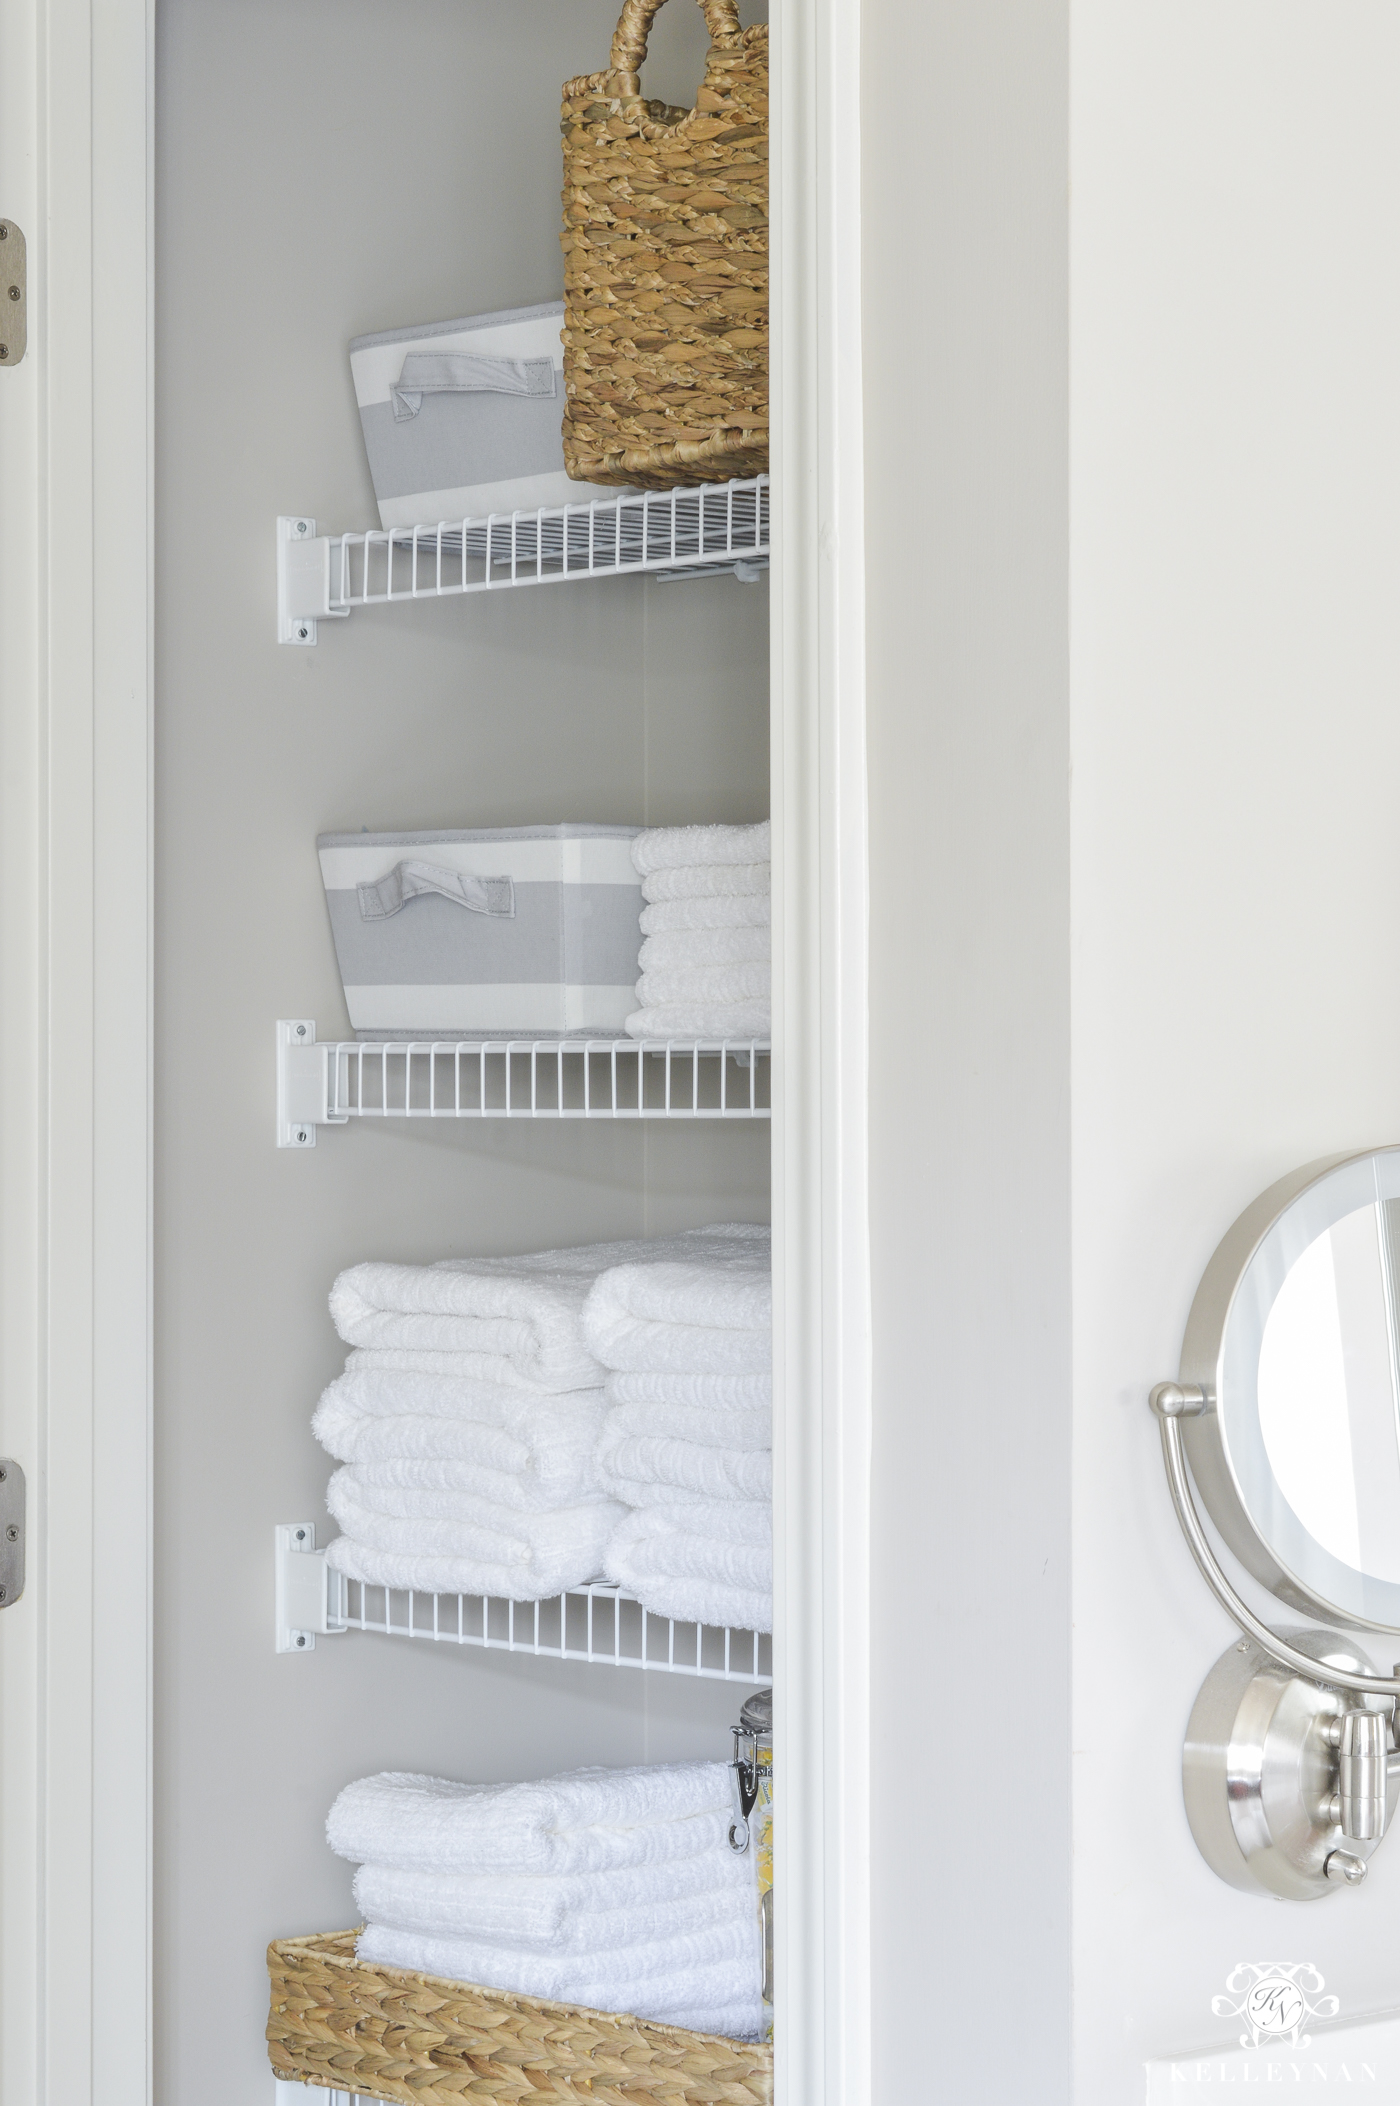 Pleasing Organized Bathroom Linen Closet Anyone Can Have Kelley Nan Download Free Architecture Designs Embacsunscenecom